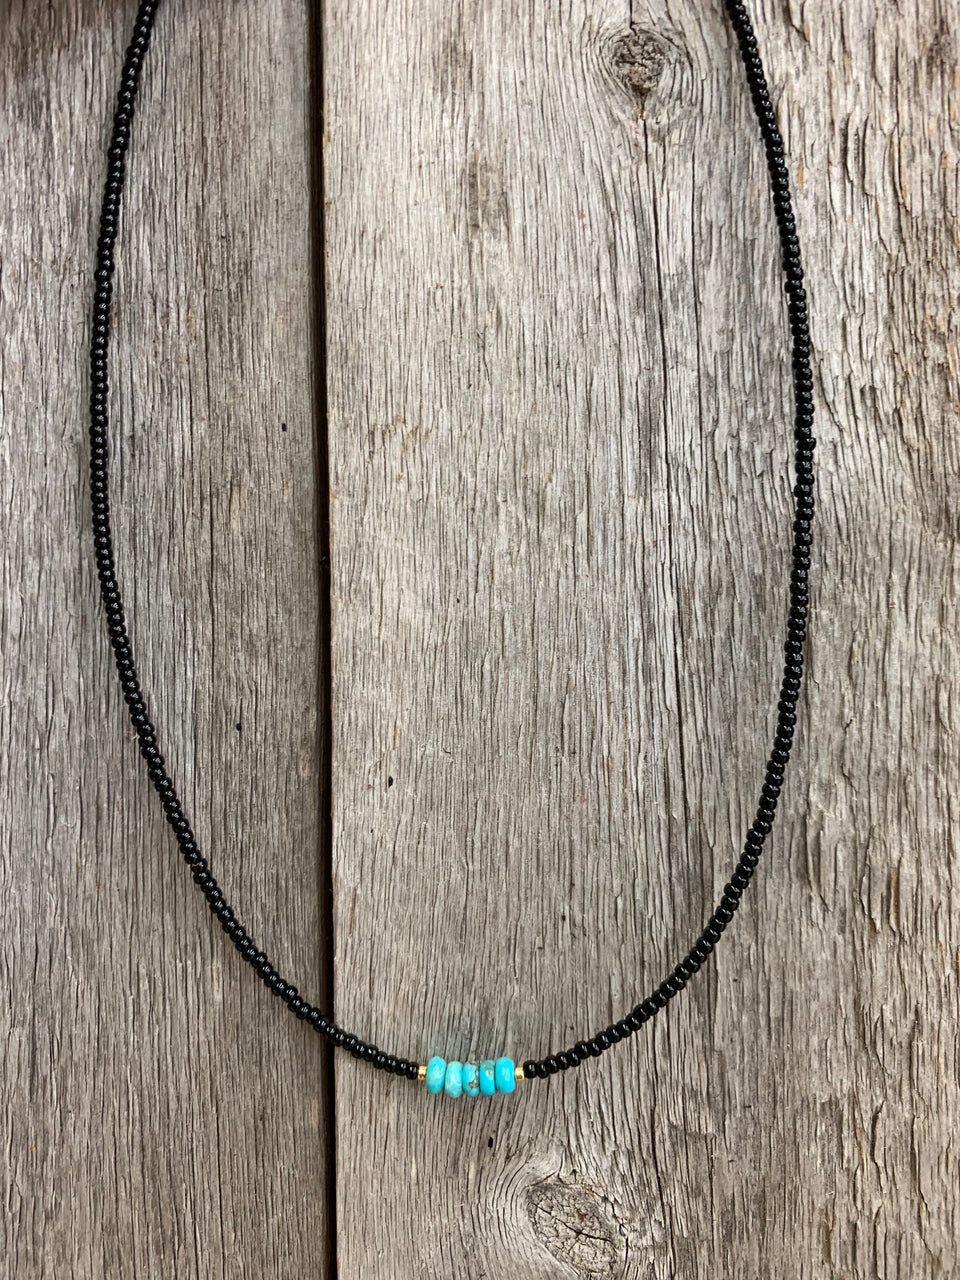 "J.Forks Designs necklace hanging on a wooden backdrop. This 16"" necklace has black seed beads with a Kingman Turquoise center."